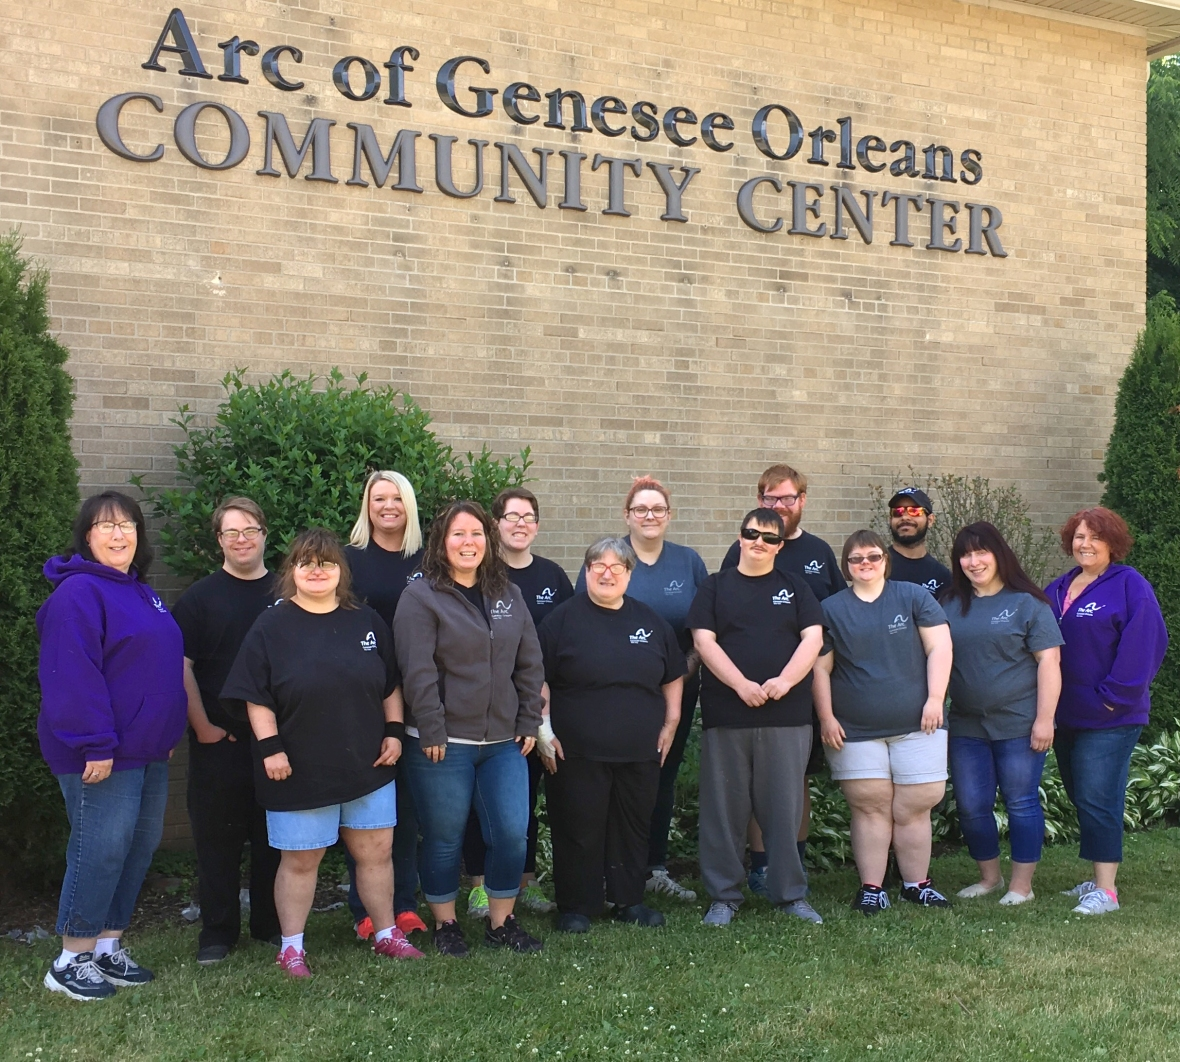 ARC Genesee Orleans Group Photo